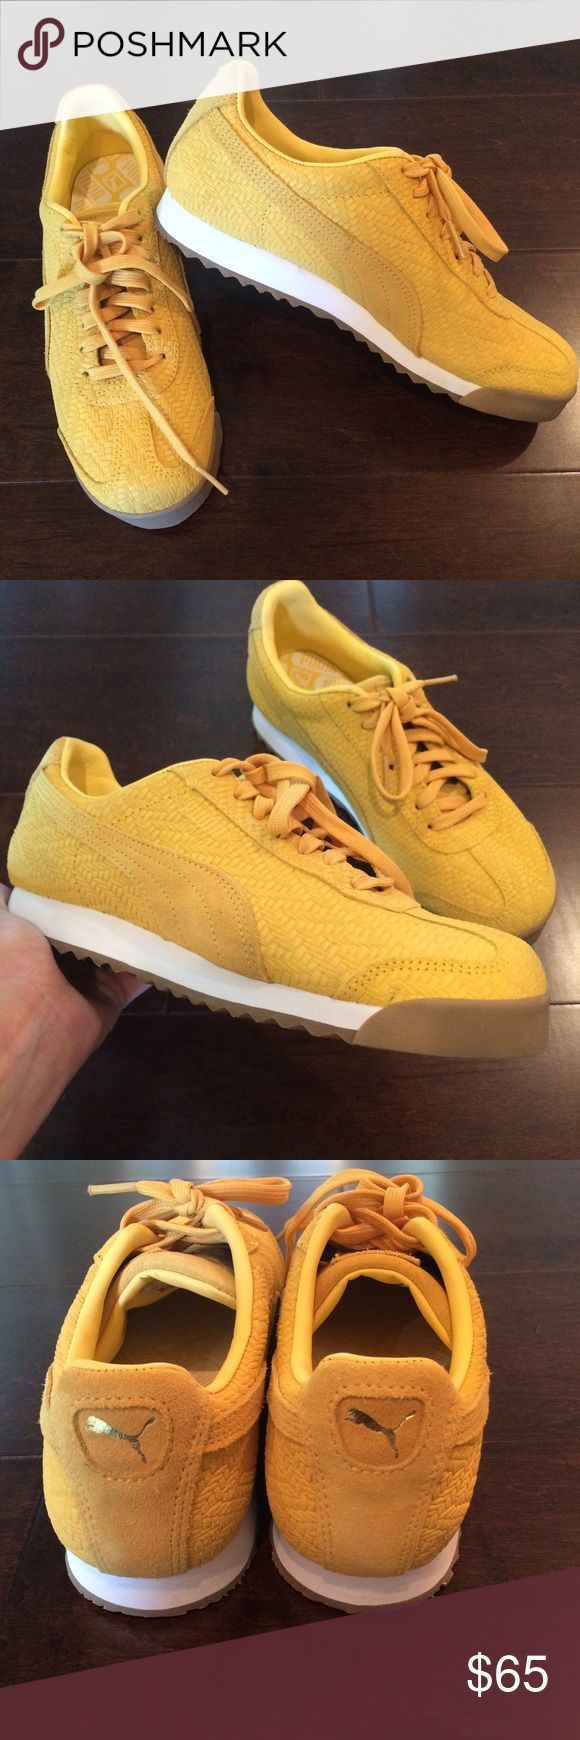 Puma classics NWOT New without box, unworn! Mustard yellow leather suede classic Pumas, embossed woven pattern, faint mark on right shoe from storage. Genuine leather, rubber sole. Fits true to size. No trades. Lowest. Puma Shoes Sneakers